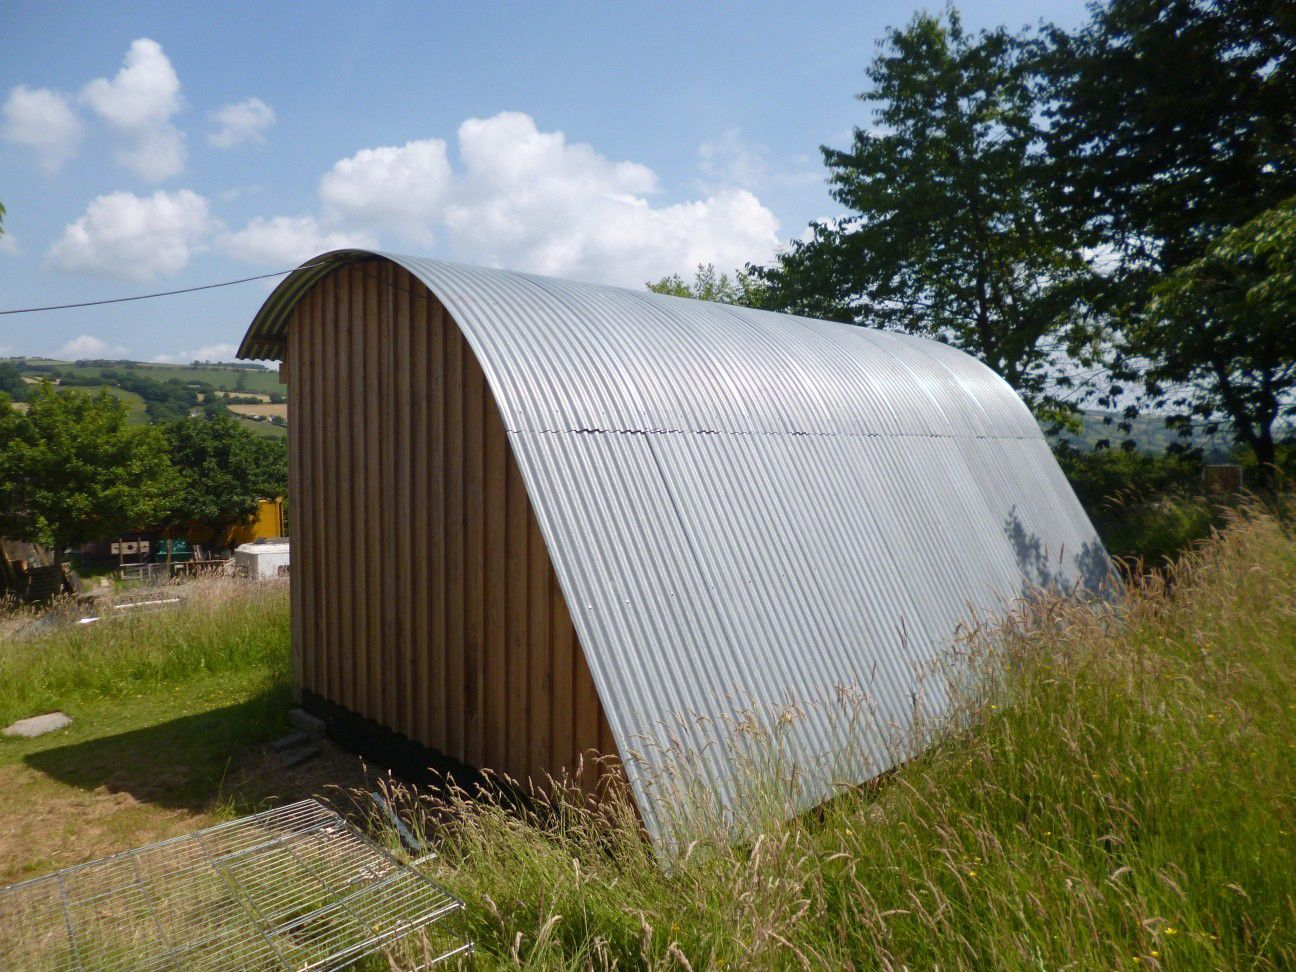 Arched Building-Holiday Camping Pods-Wigwam Pods-Glamping Pods For Sale